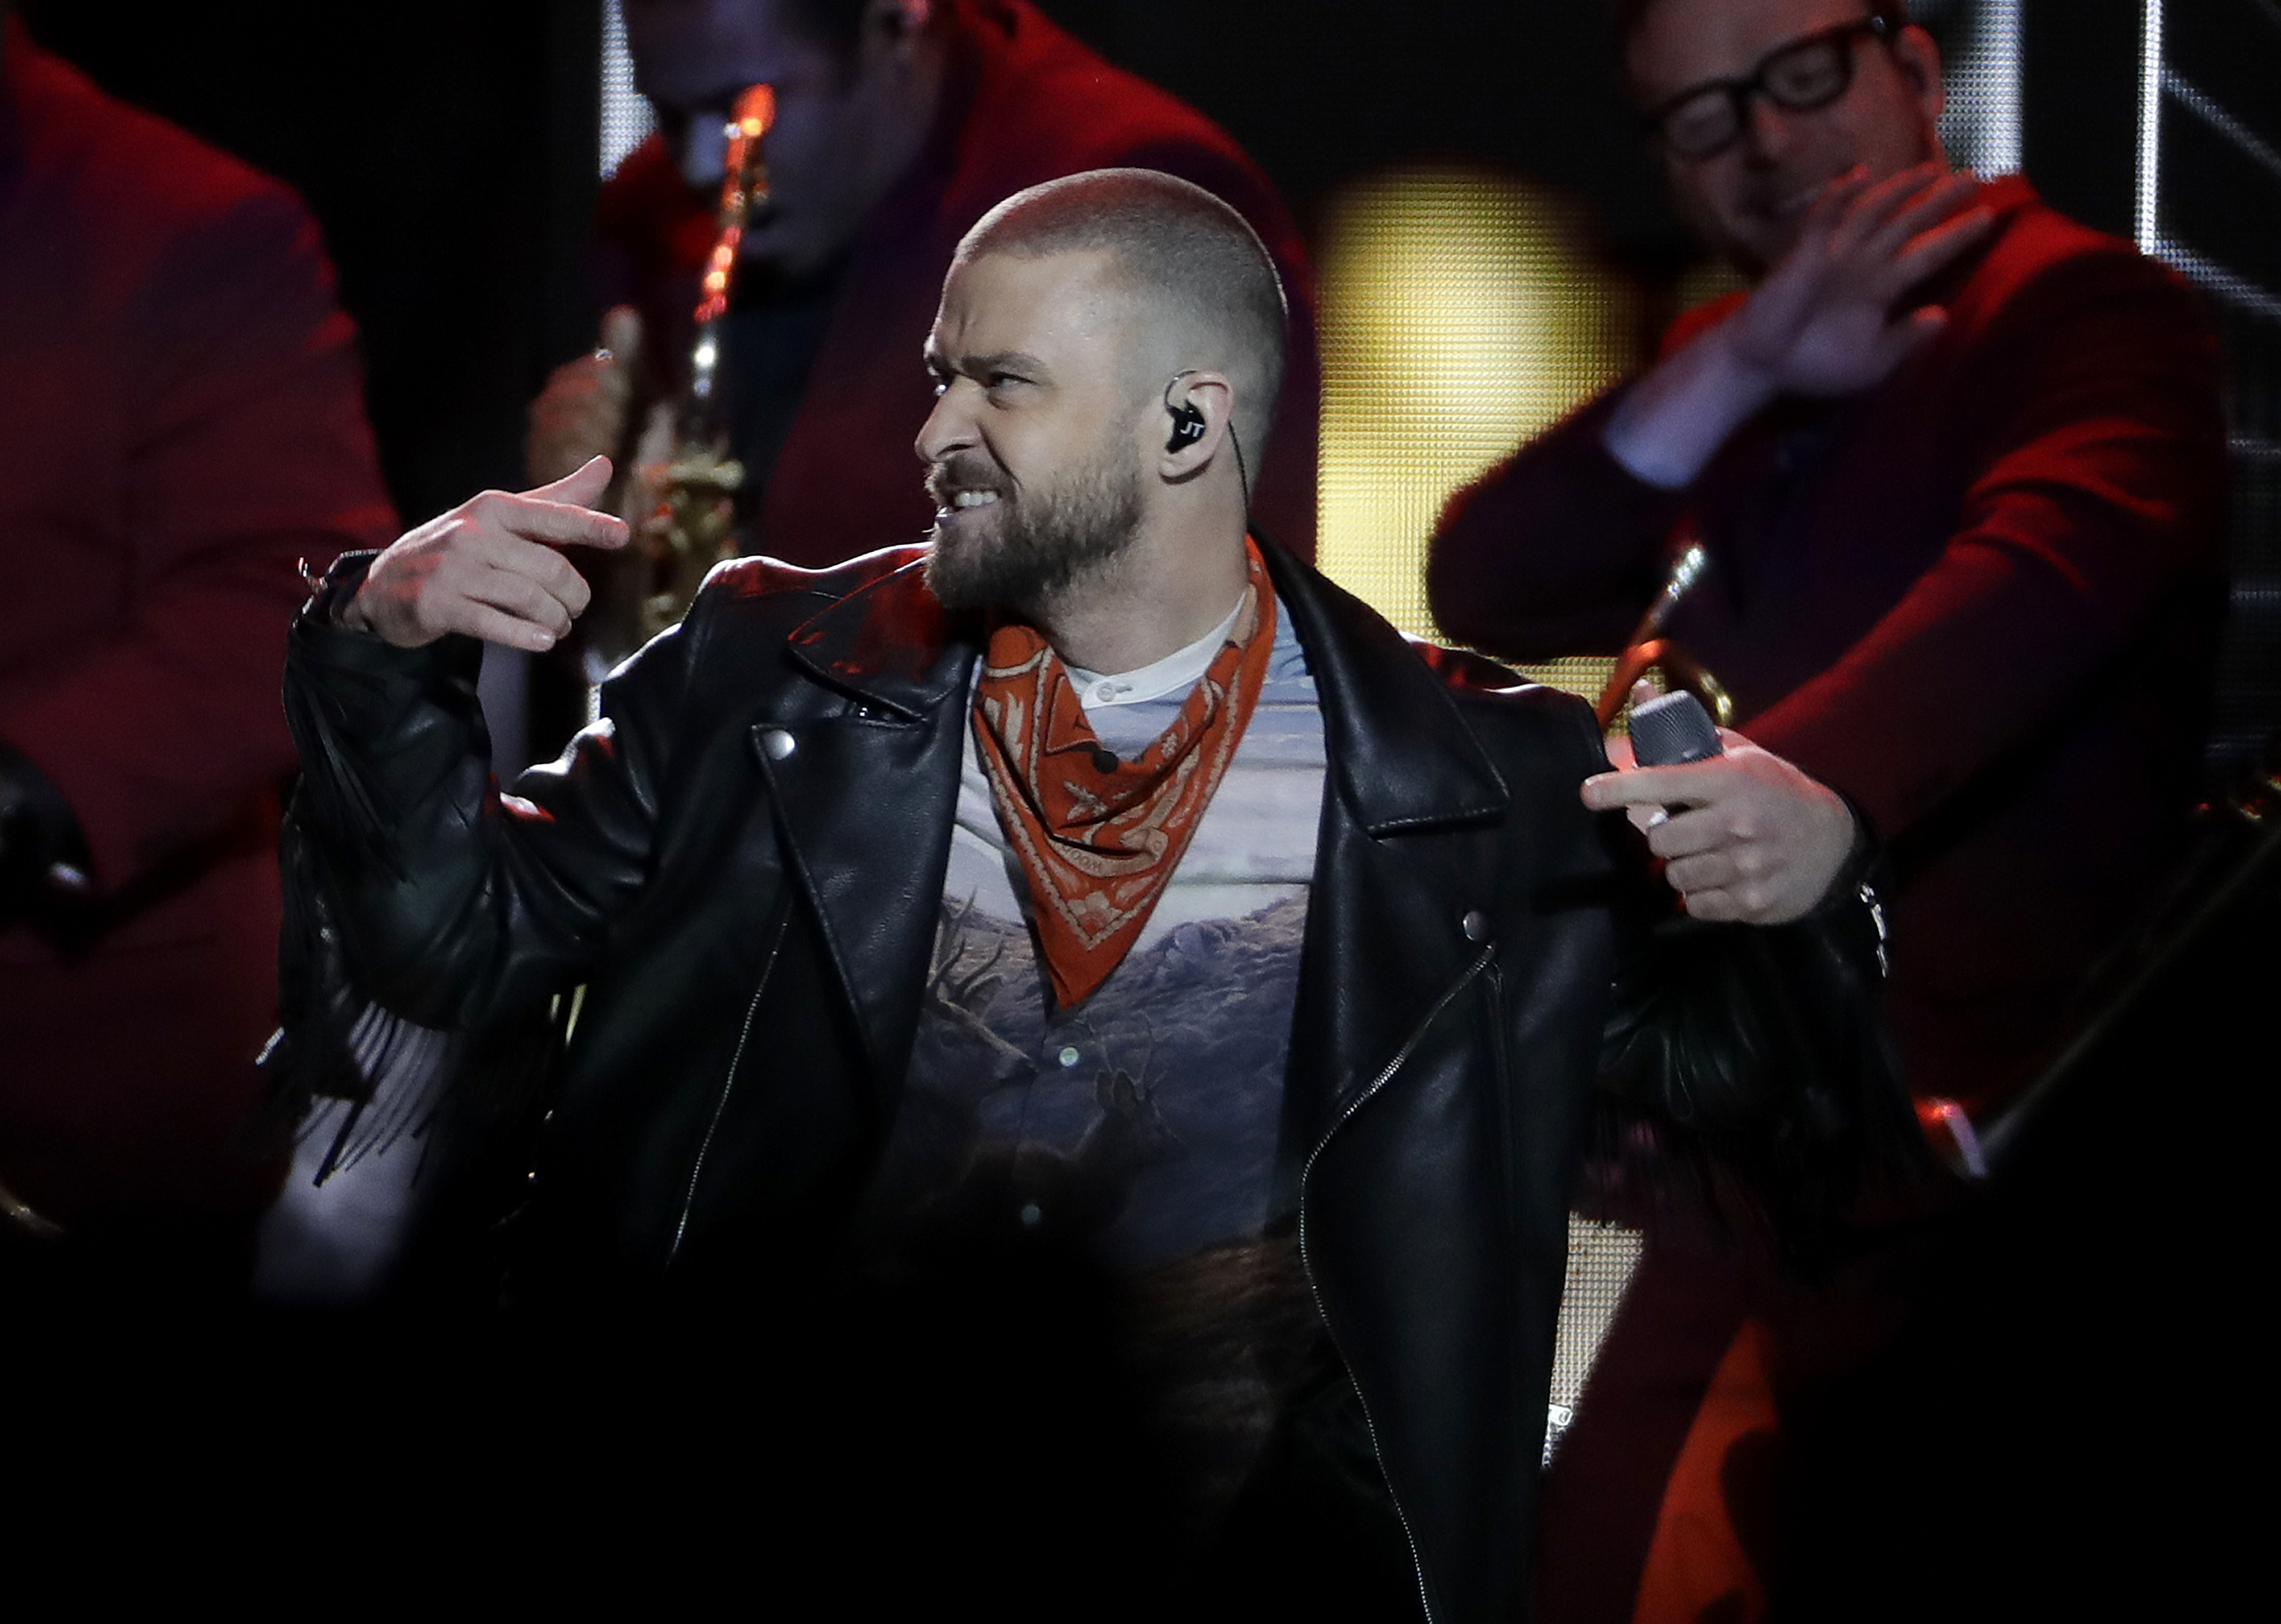 "<div class=""meta image-caption""><div class=""origin-logo origin-image ap""><span>AP</span></div><span class=""caption-text"">Justin Timberlake performs during halftime of the NFL Super Bowl 52 football game between the Philadelphia Eagles and the New England Patriots Sunday, Feb. 4, 2018, in Minneapolis. (AP Photo/Eric Gay, Eric Slocum)</span></div>"